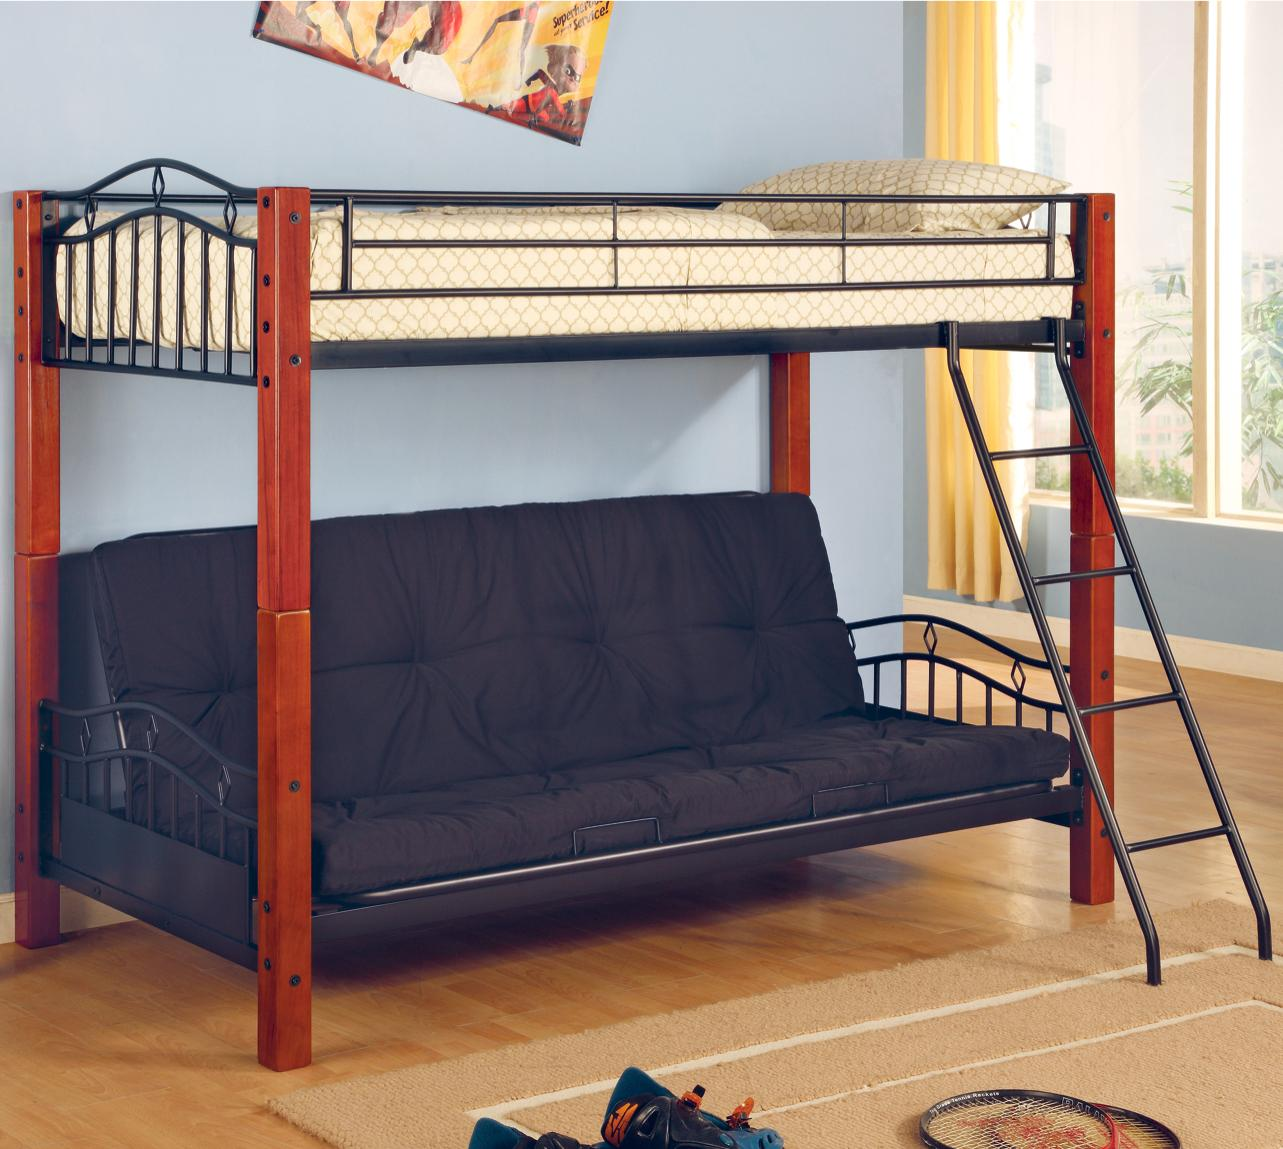 Medium image of celina twin futon bunk bed